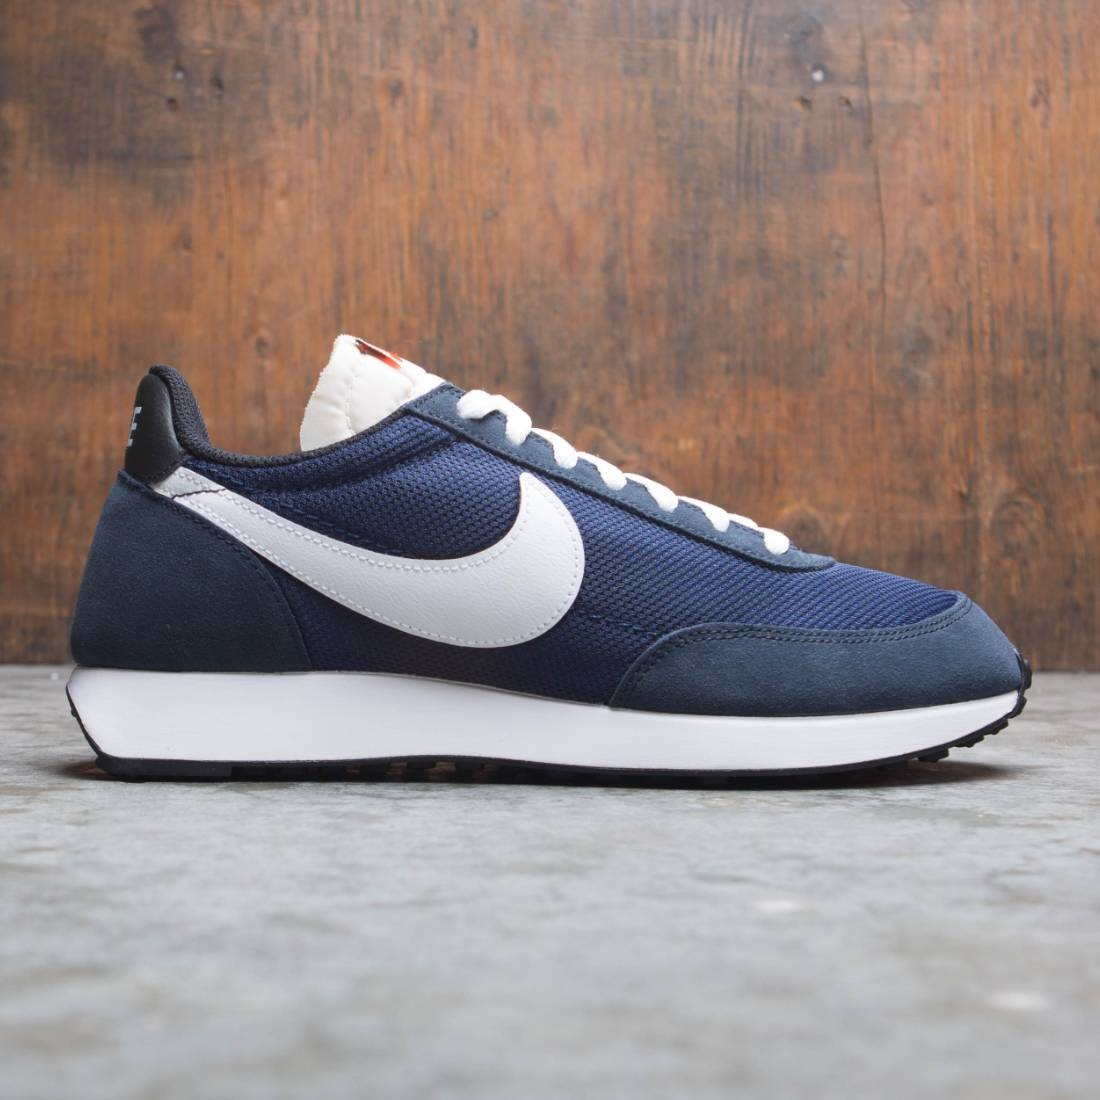 new arrival ac6eb 88583 Nike Men Air Tailwind 79 (dark obsidian / white-midnight navy-black)